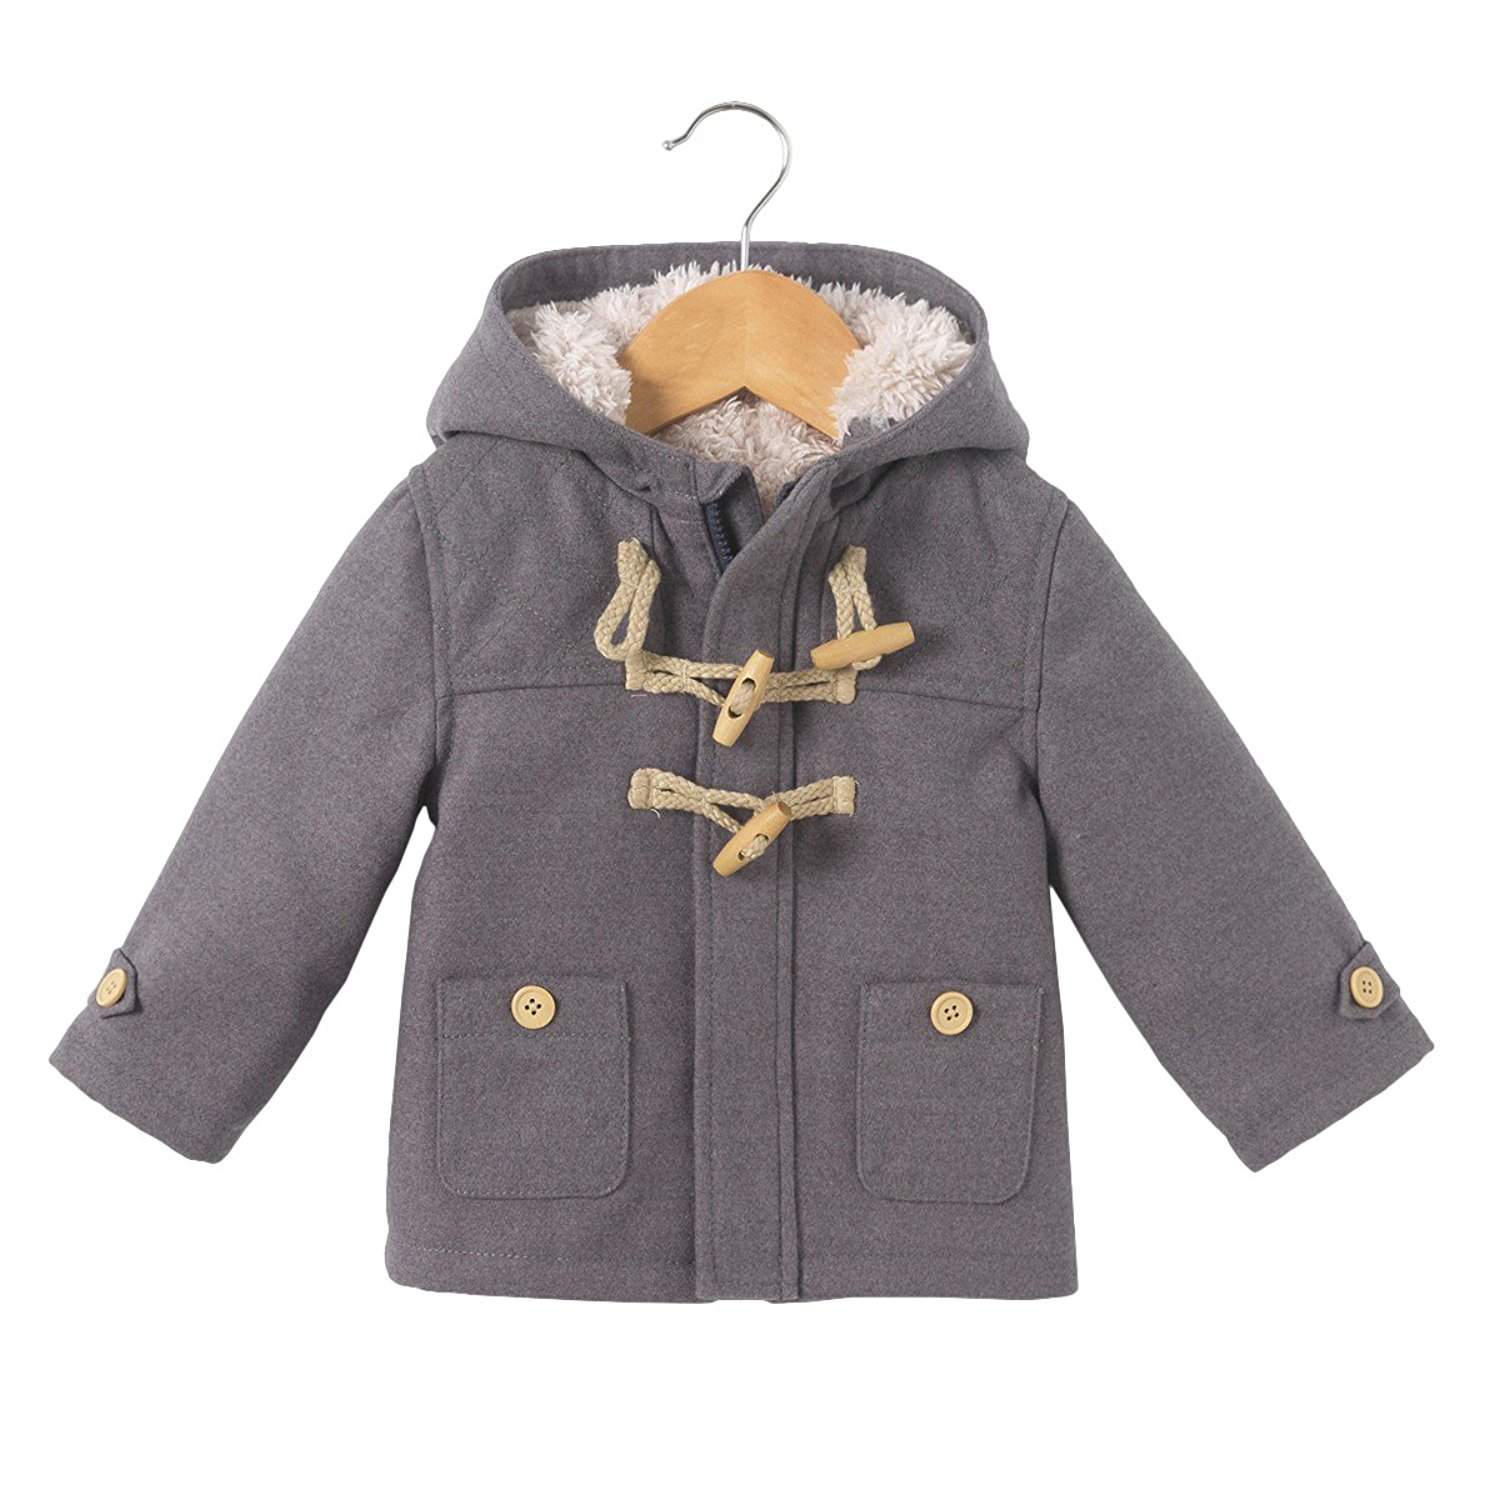 La Redoute Collections Big Boys Parka with Faux Fur Hood 3 Months-3 Years